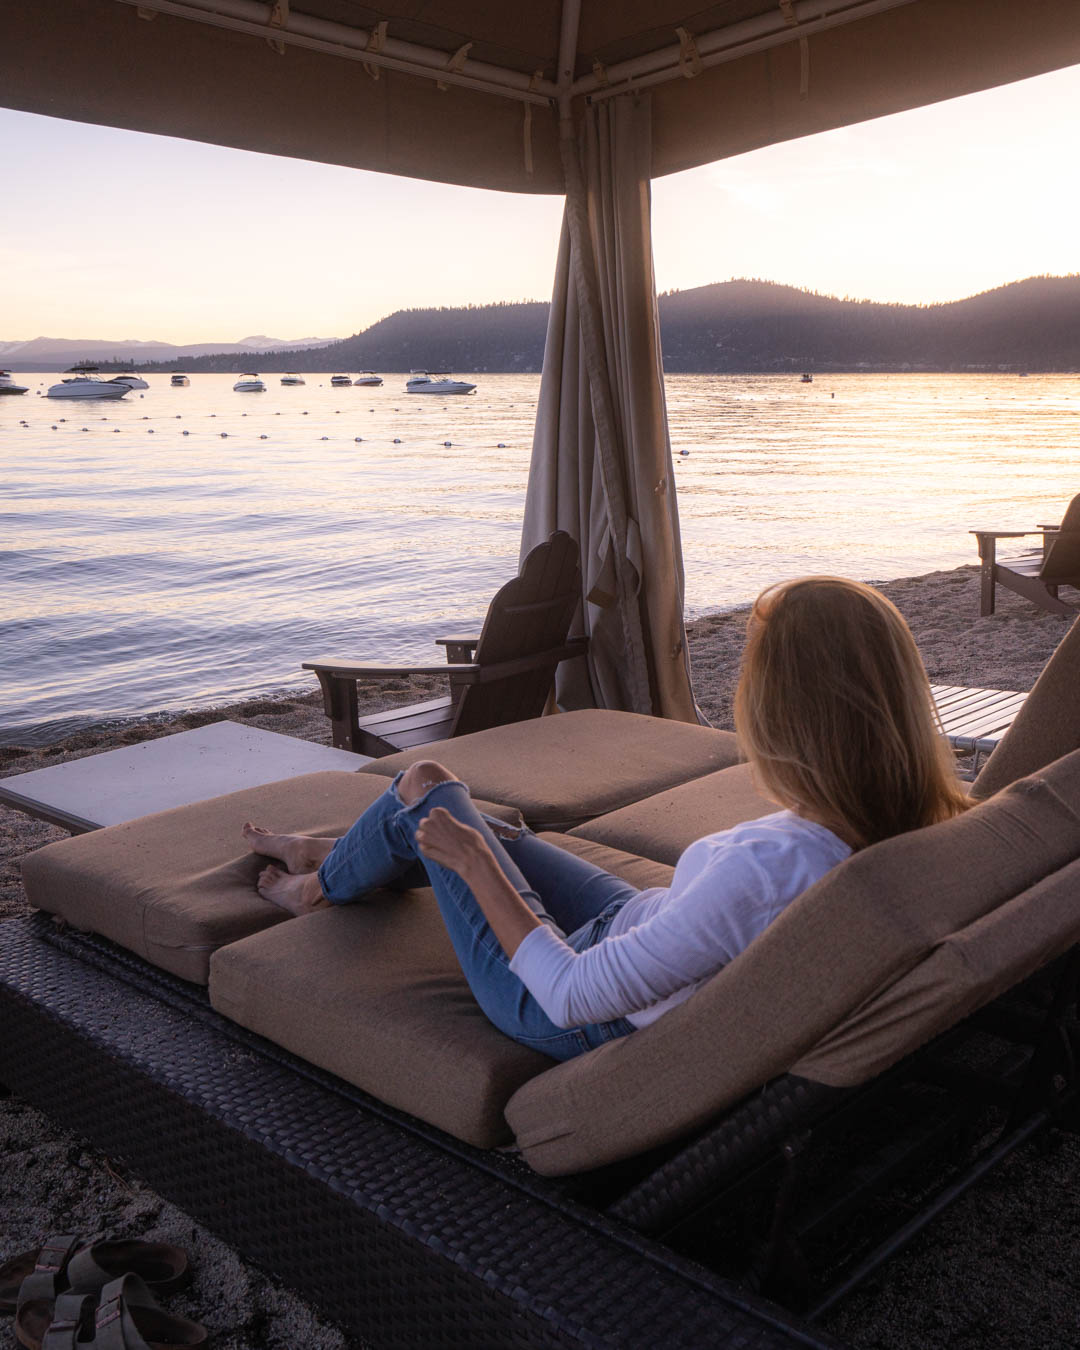 Sunset views from the Hyatt Regency beach at Lake Tahoe.